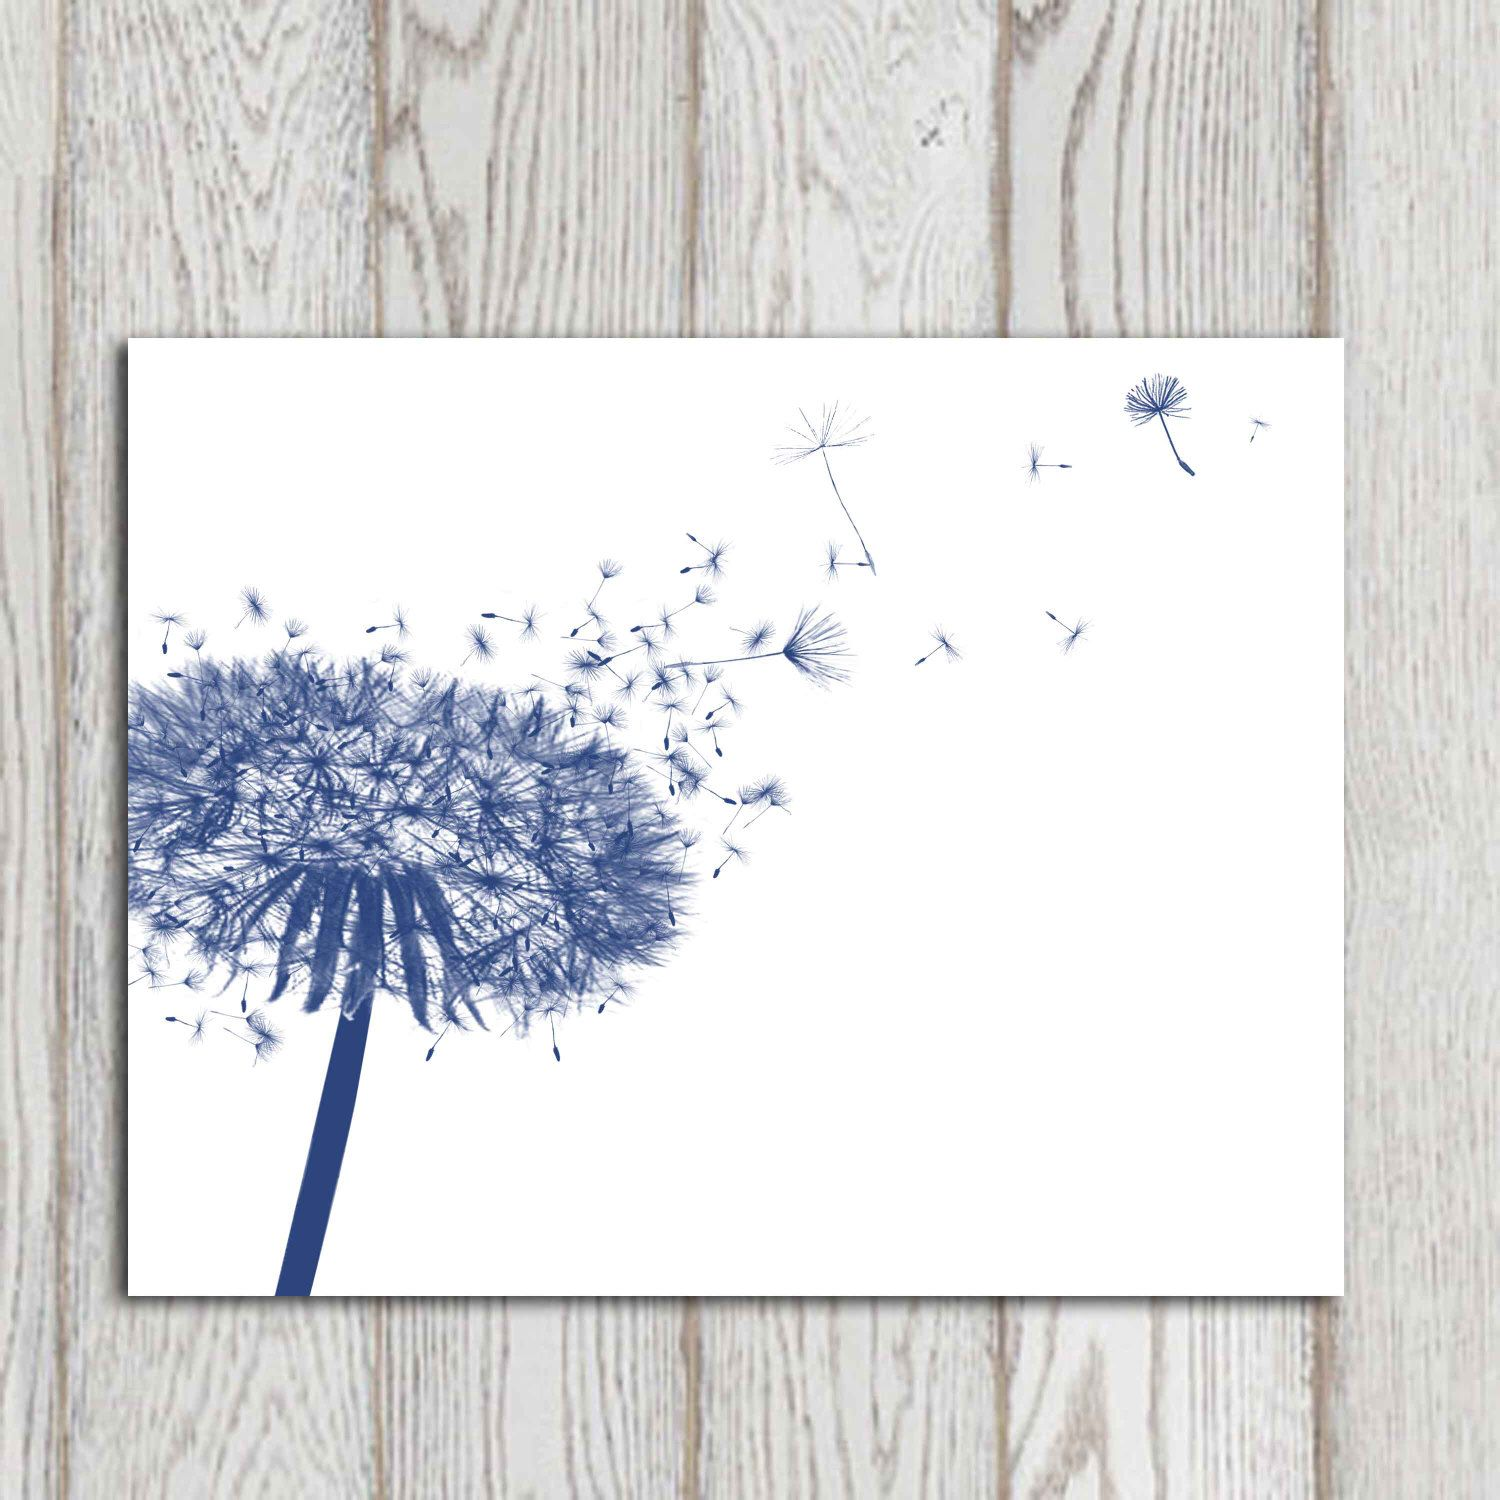 Navy Blue Wall Art dandelion decor print navy blue home decor navy bedroom decor